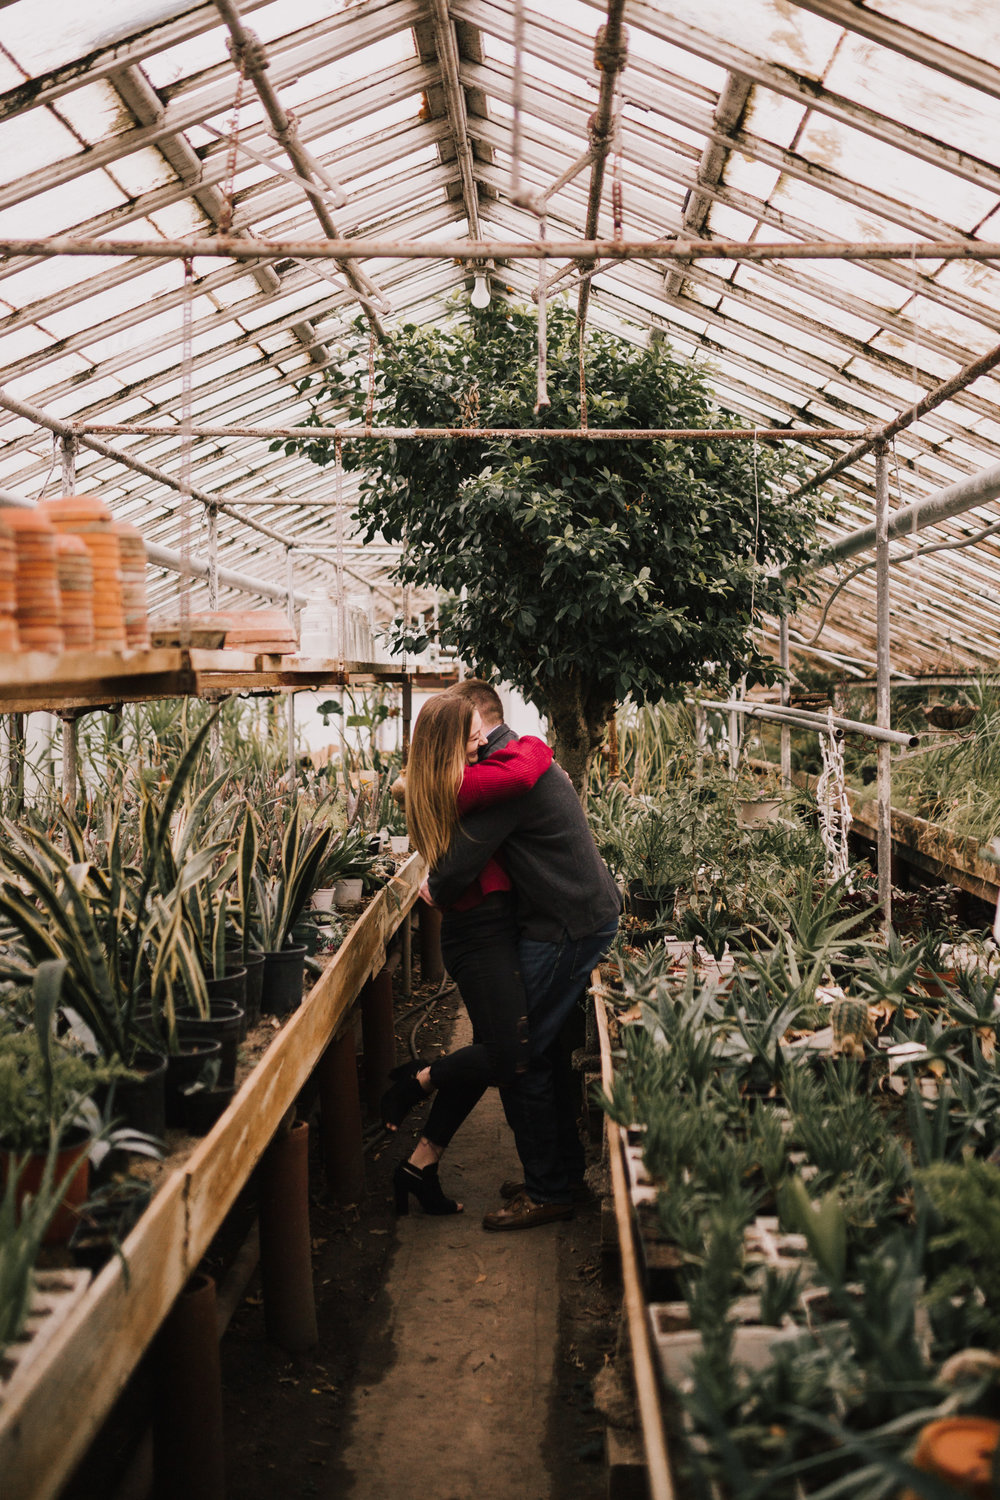 alyssa barletter photography johns greenhouse kansas city missouri brookside waldo engagement session winter-7.jpg